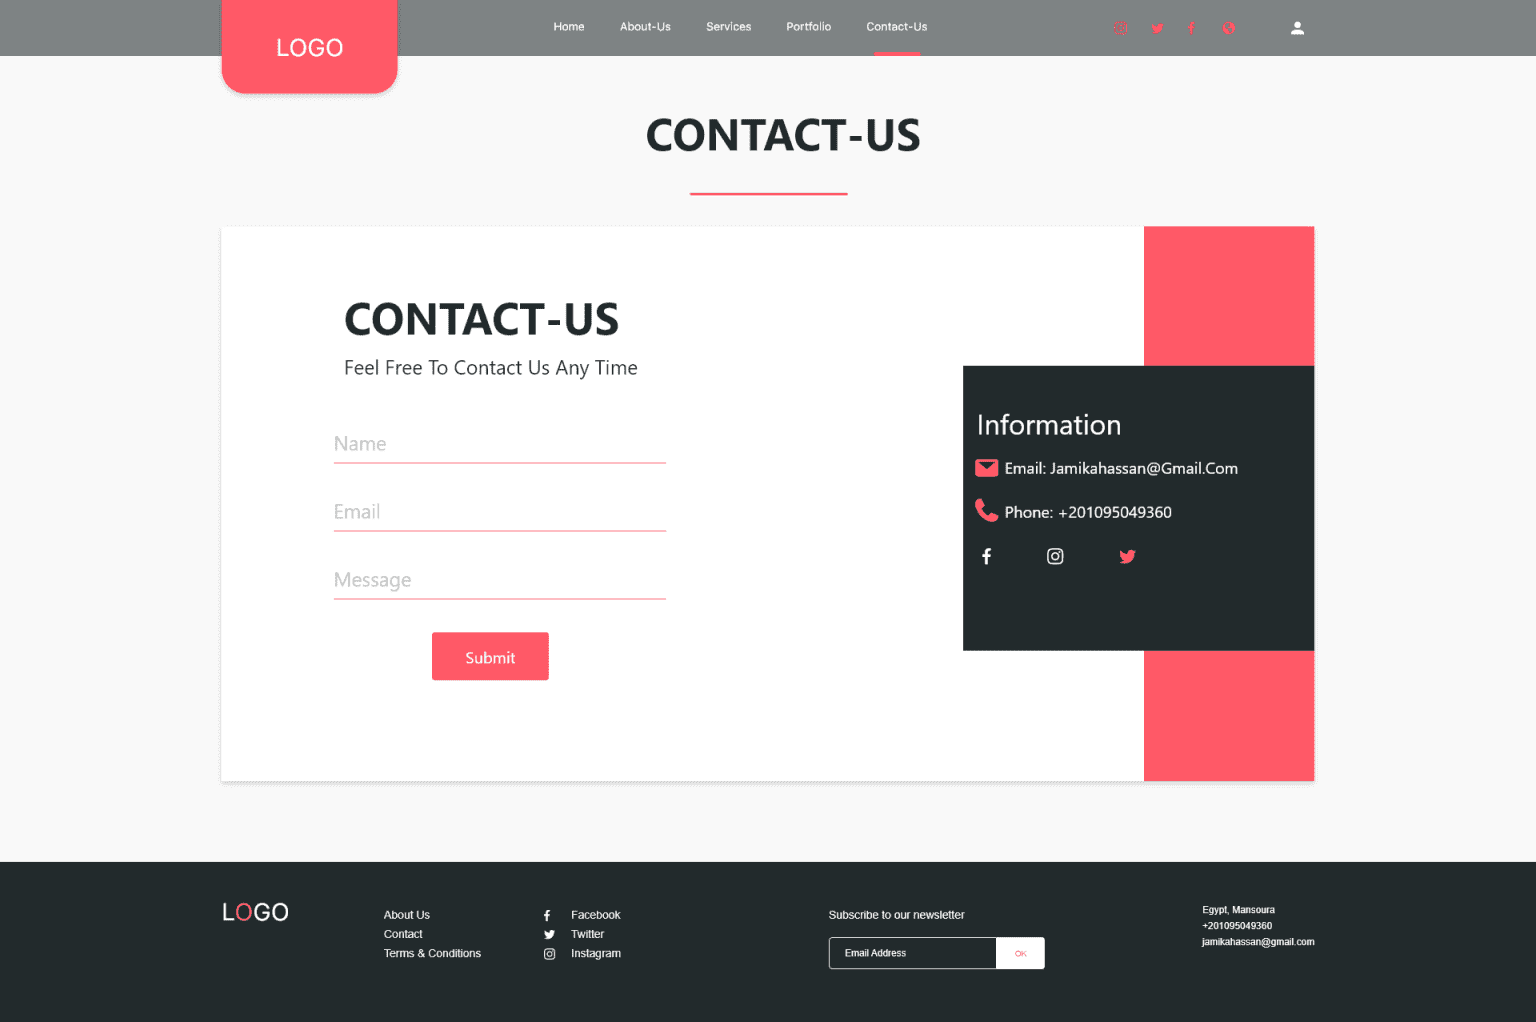 Contact-Us Page